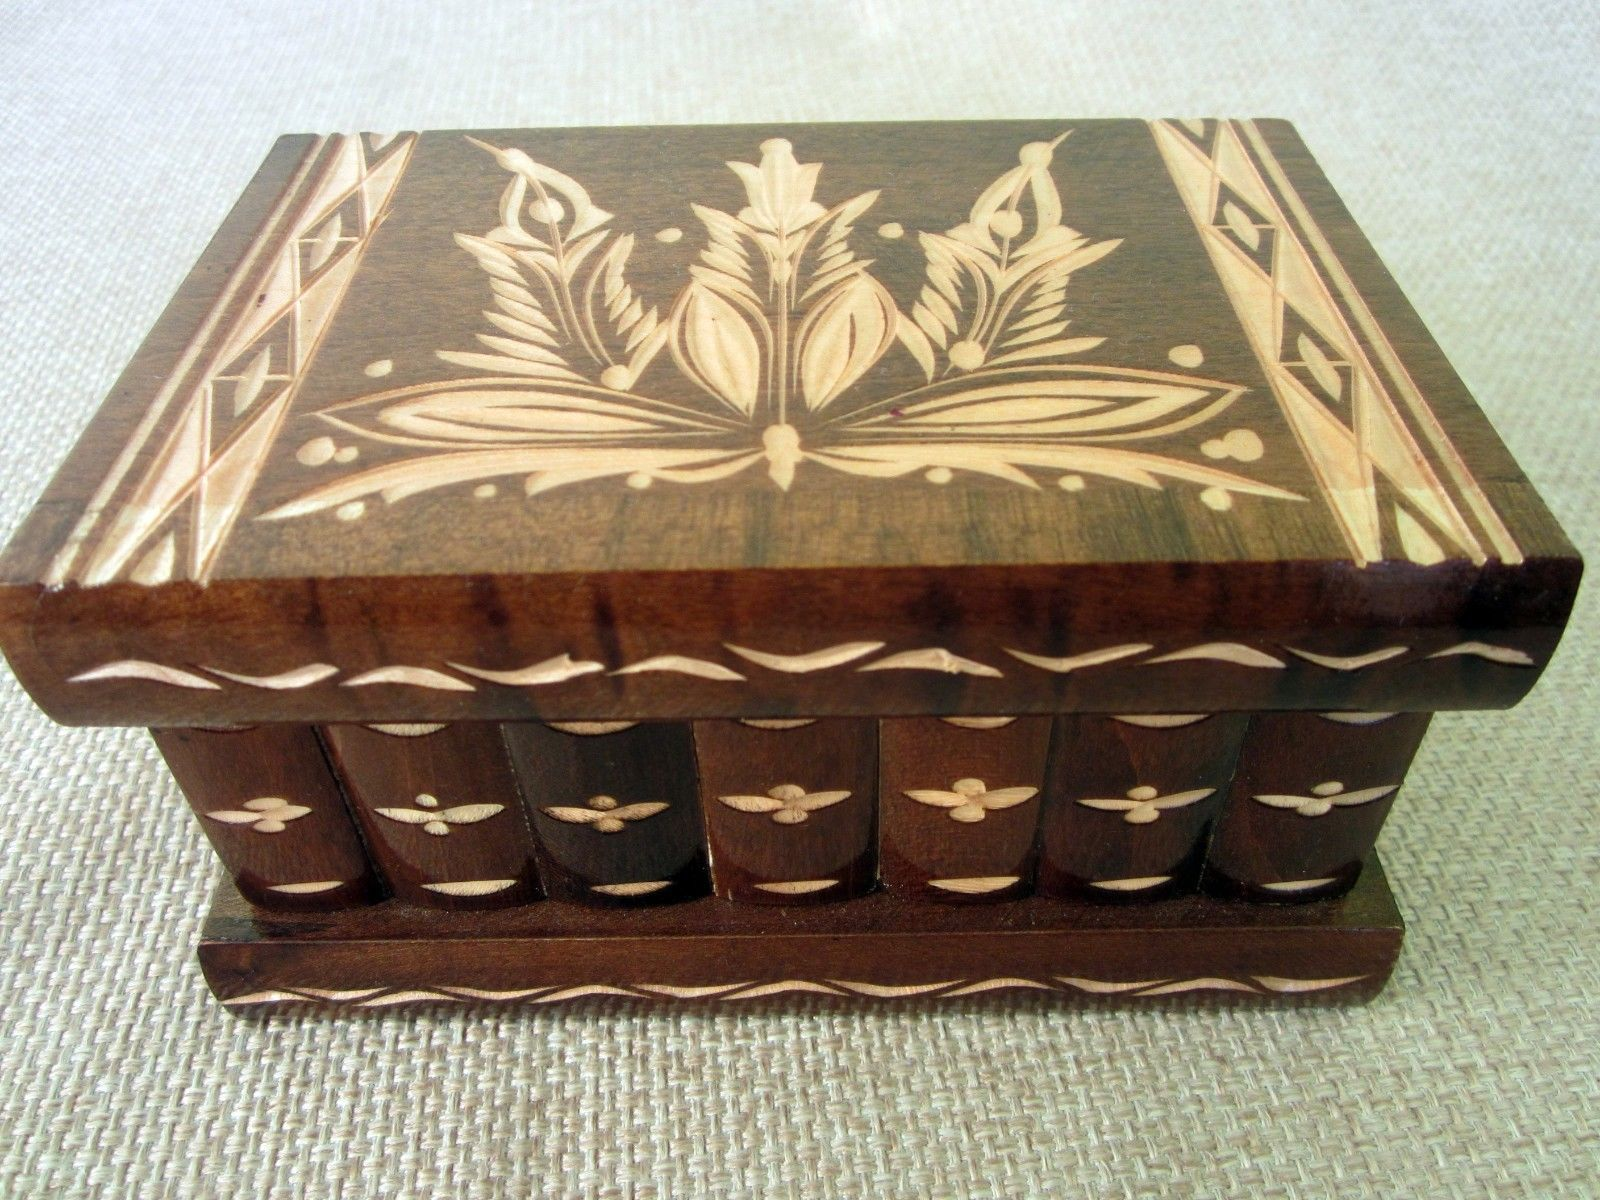 57. 57. Previous. Secret Puzzle Brown Compartment Wooden Magic Puzzle Box Hungarian Jewelry Lock